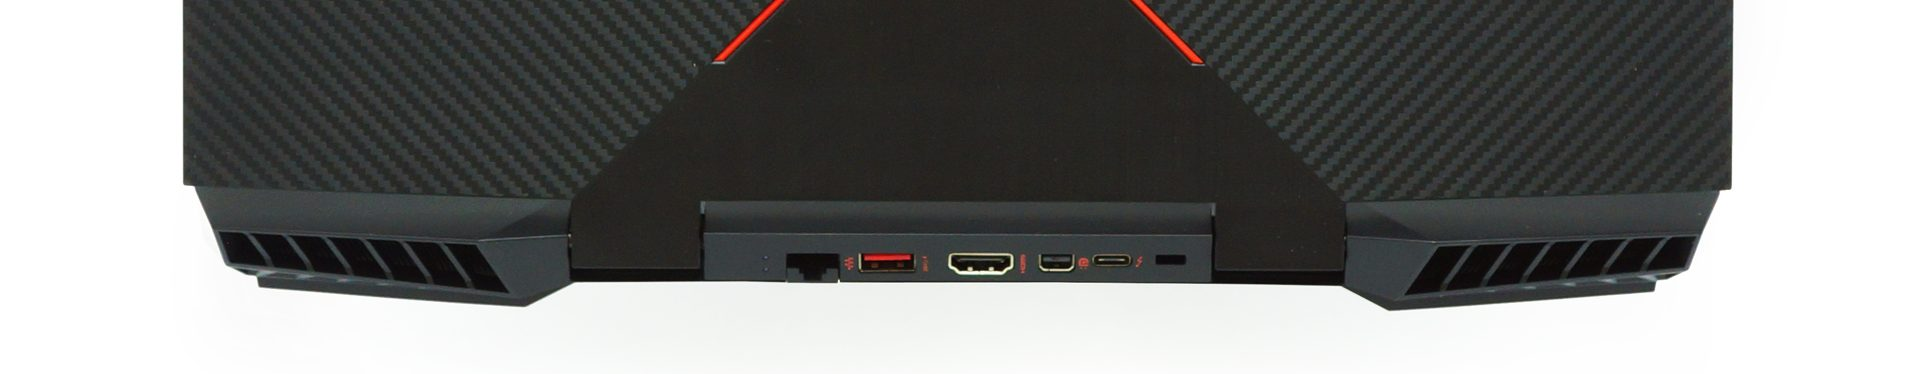 HP Omen 15 2018 review – GTX 1070 Max-Q and 144Hz display